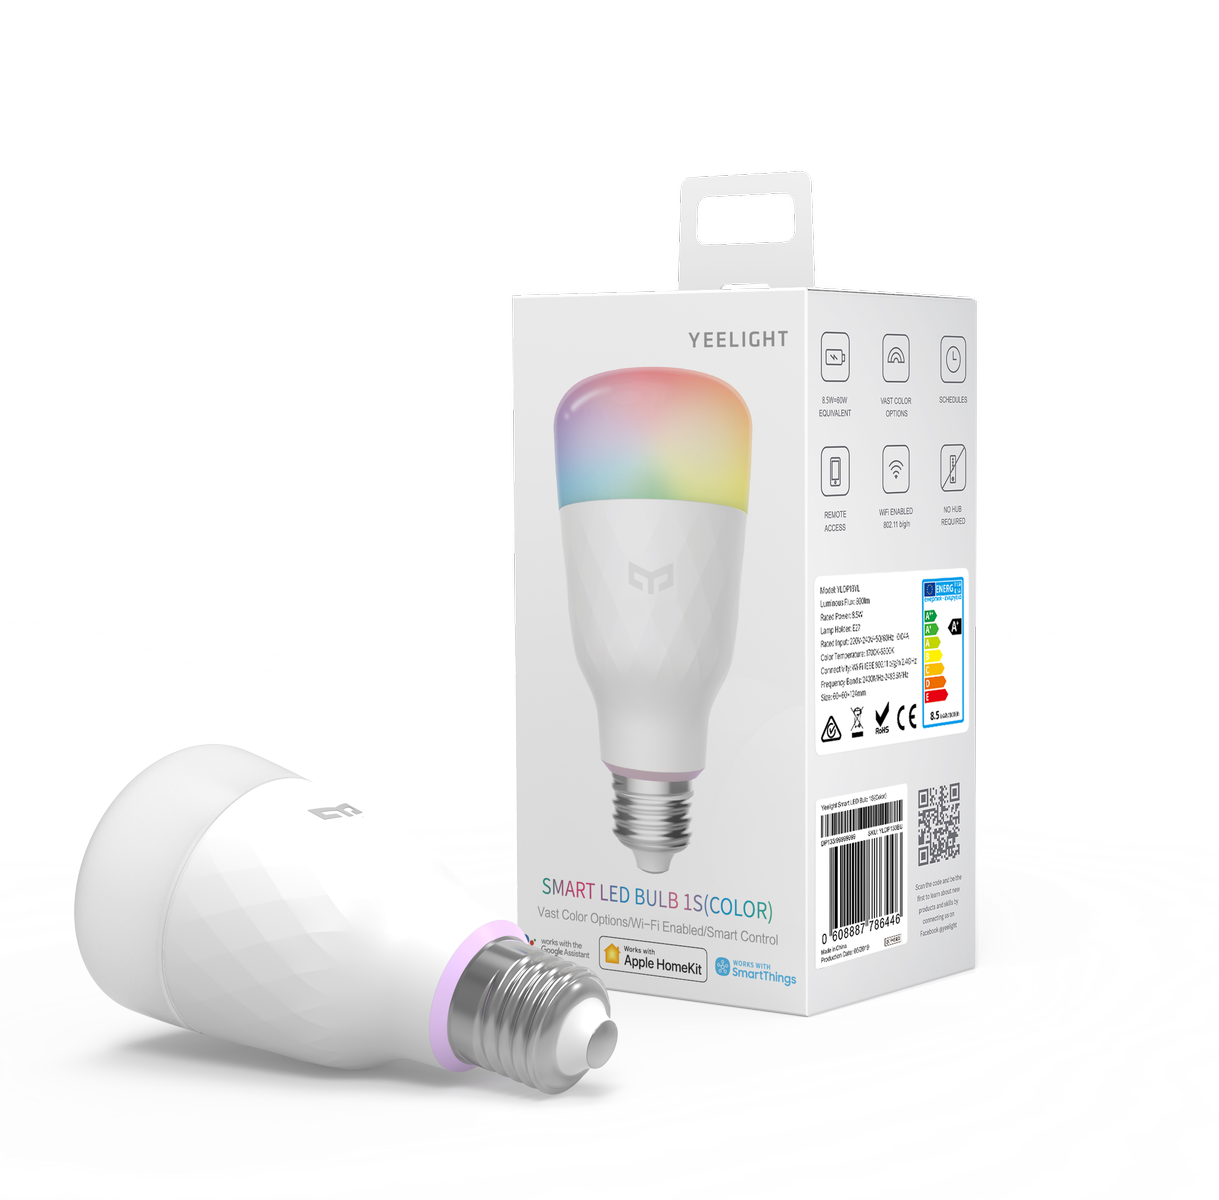 Yeelight LED Bulb 1S Multicolore - Lampadina Led WiFi E27 8,5W 800lm RGB+CCT